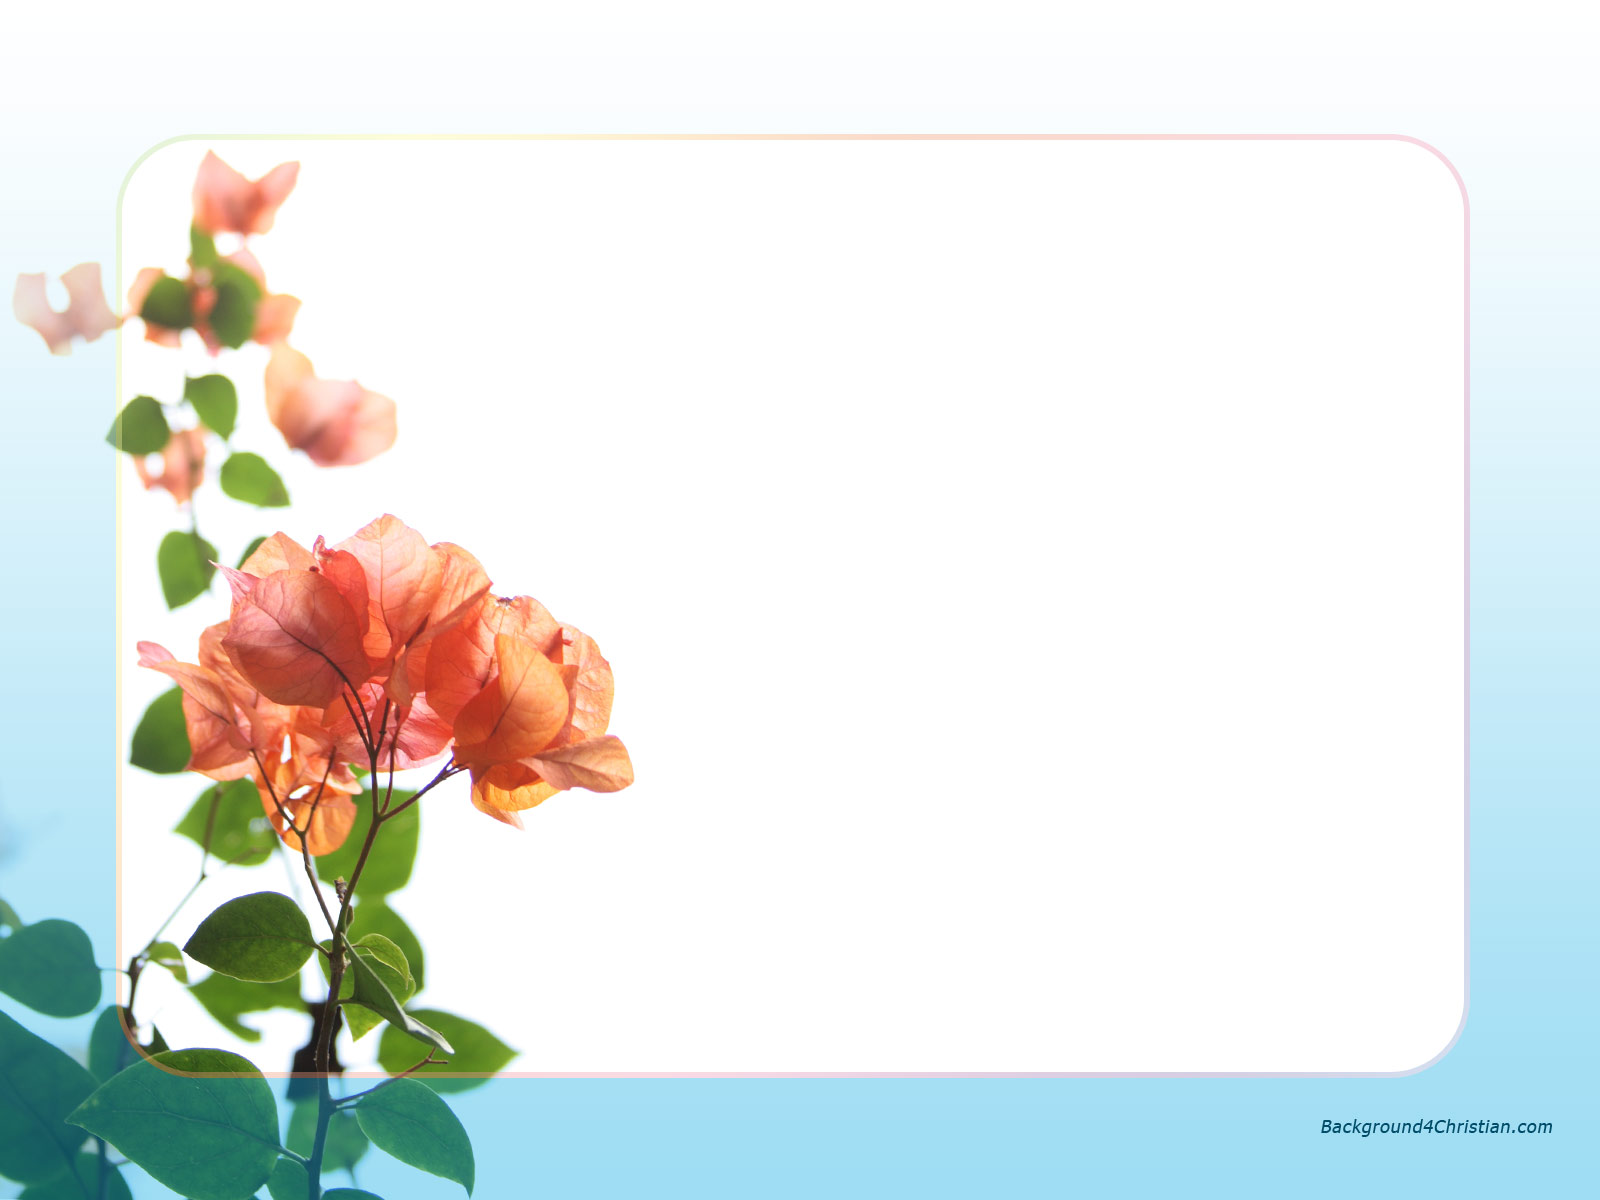 beautiful red flower with blue border frame background for powerpoint